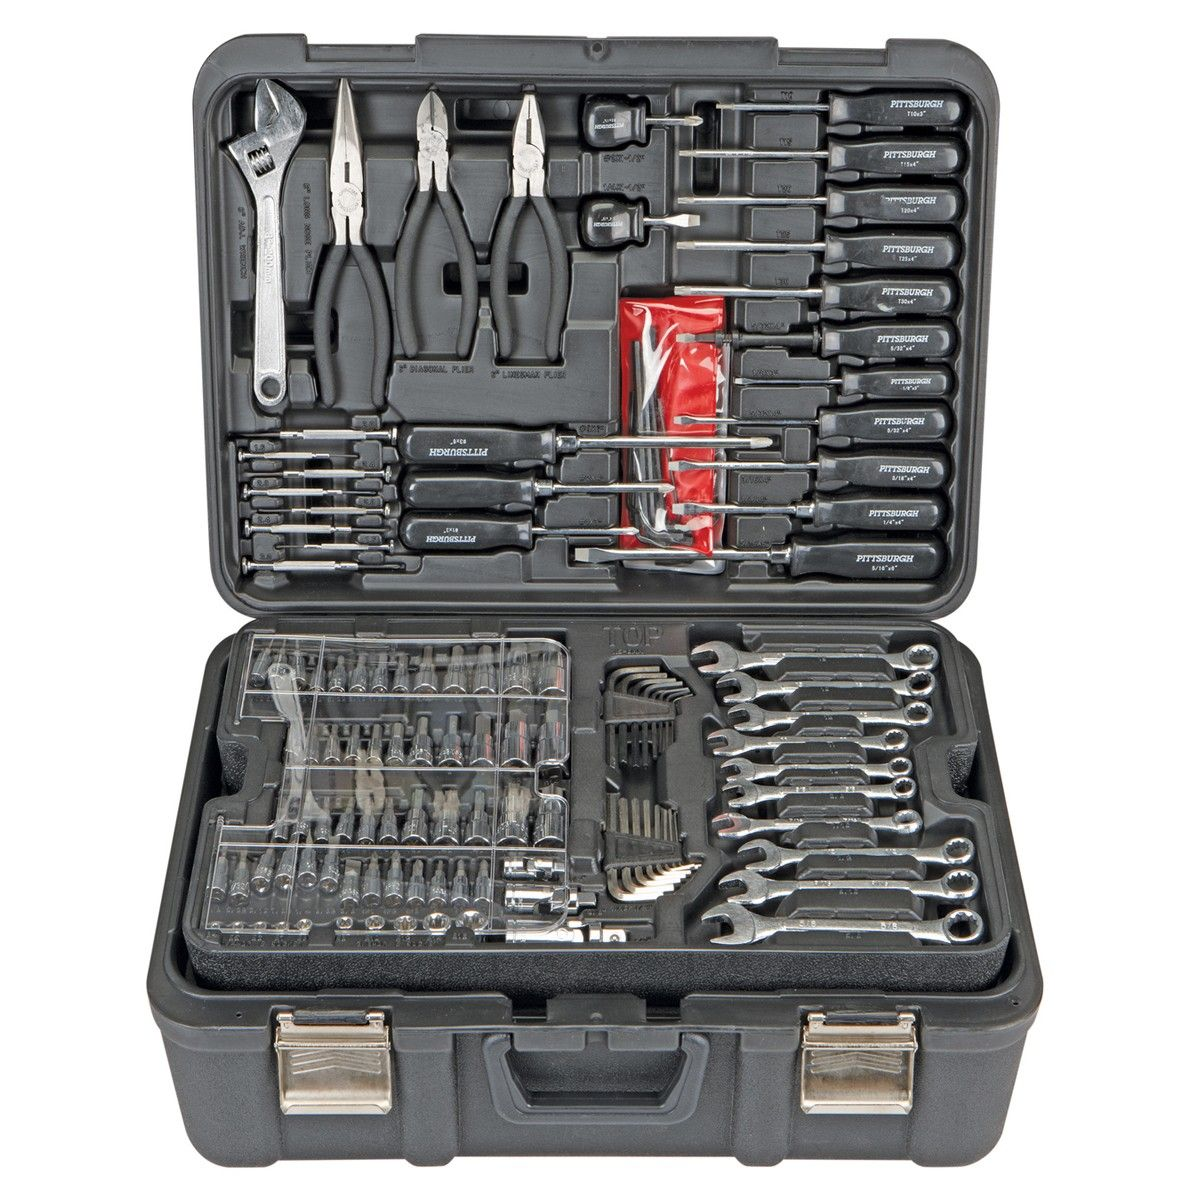 Mechanic S Tool Set 301 Pc Mechanics Tool Set Mechanic Tools Woodworking Tool Kit